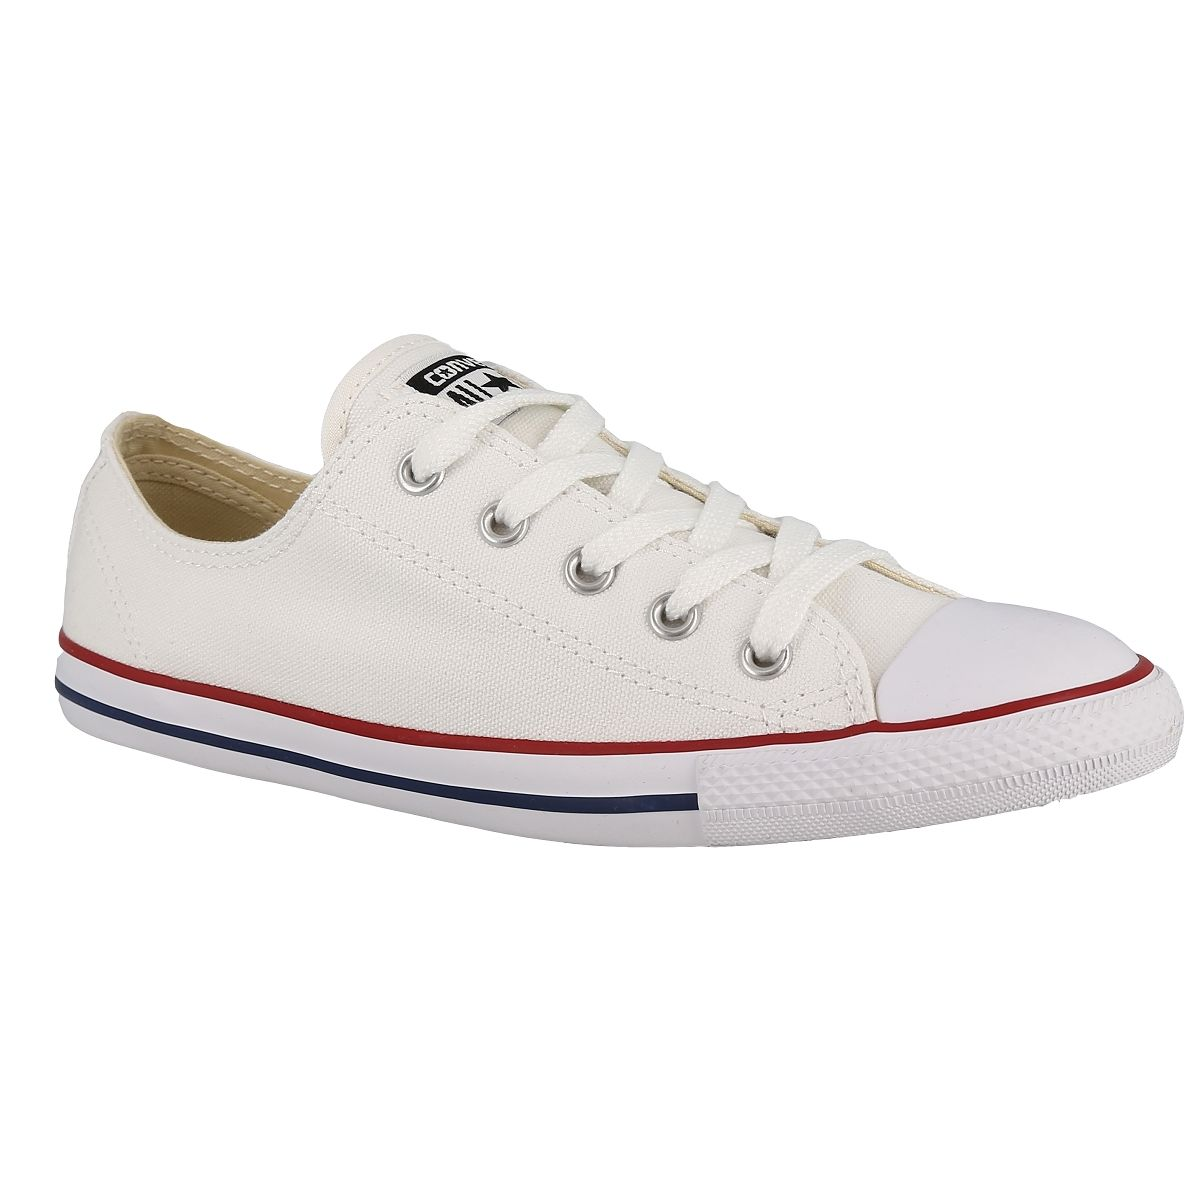 Baskets Basses Converse Chuck Taylor All Star Taille : 37